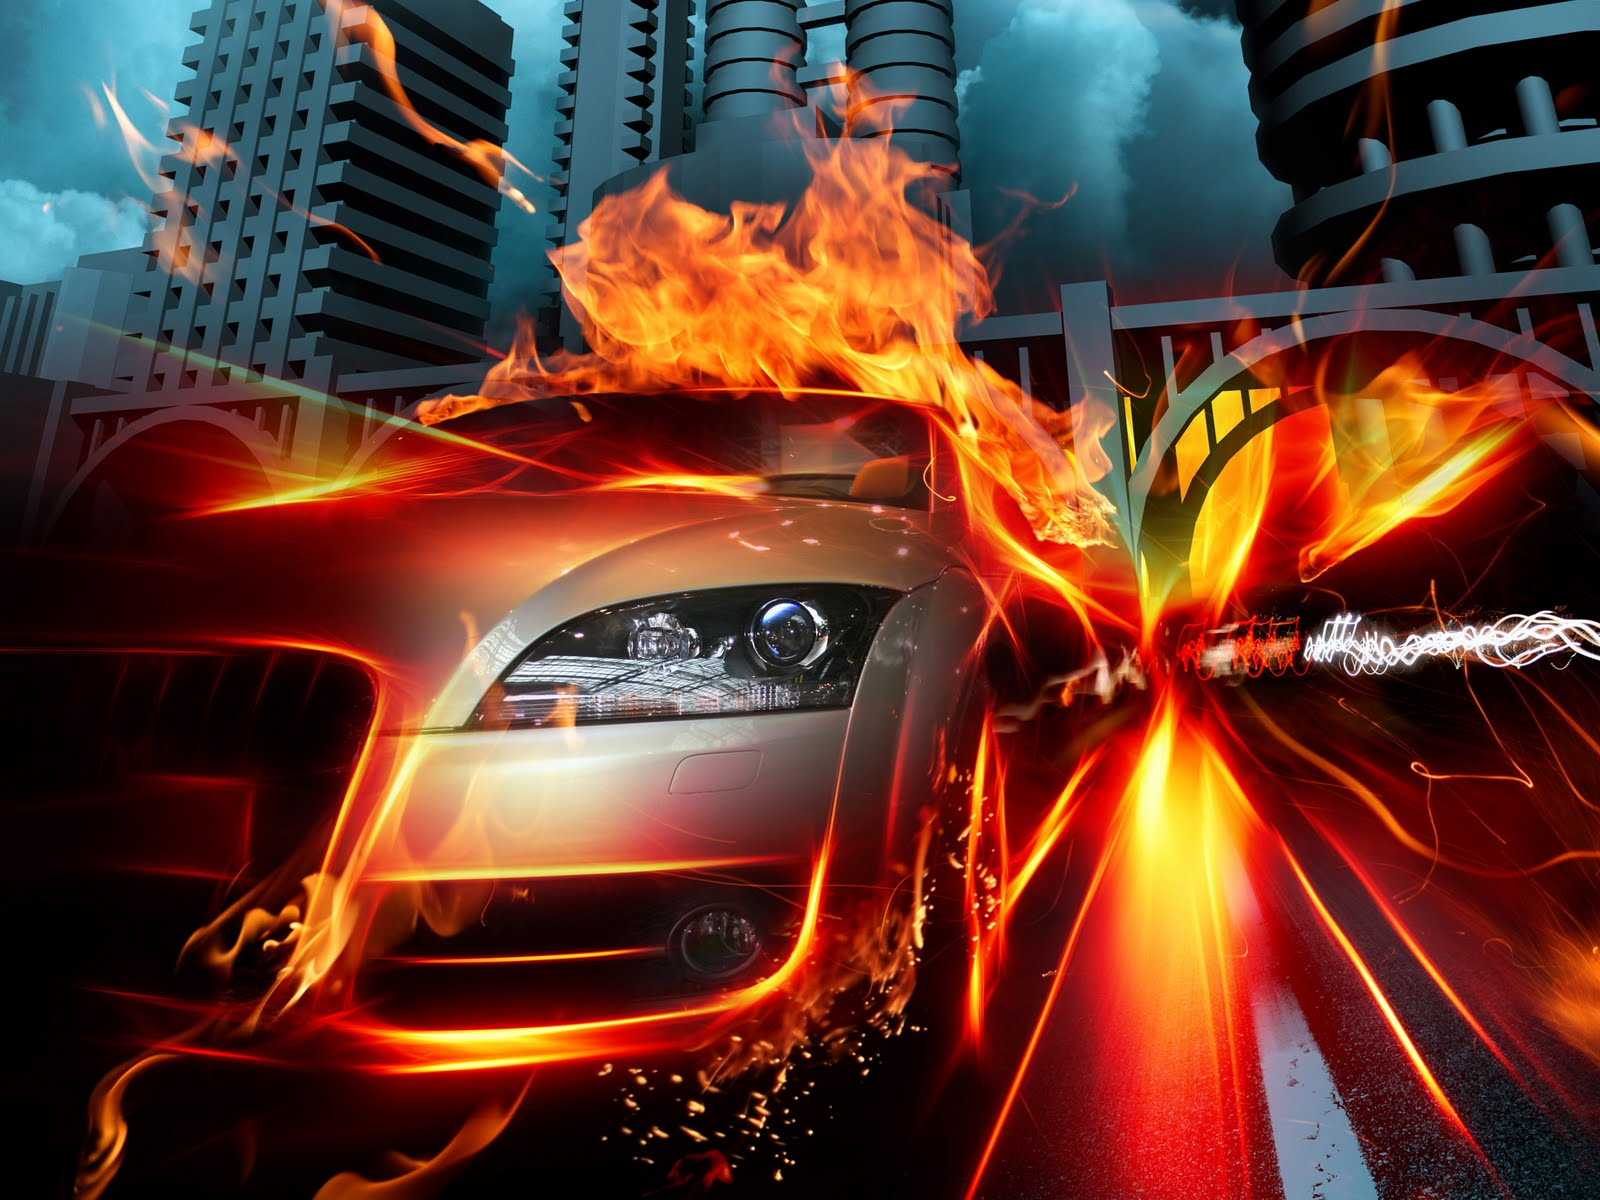 http://3.bp.blogspot.com/-RfXpIFgYibc/TjOVVk8SZmI/AAAAAAAACrw/LWUoyQRGCQM/s1600/HQ-Desktop-Wallpapers-car_in_fire_city_hq-normal.jpg